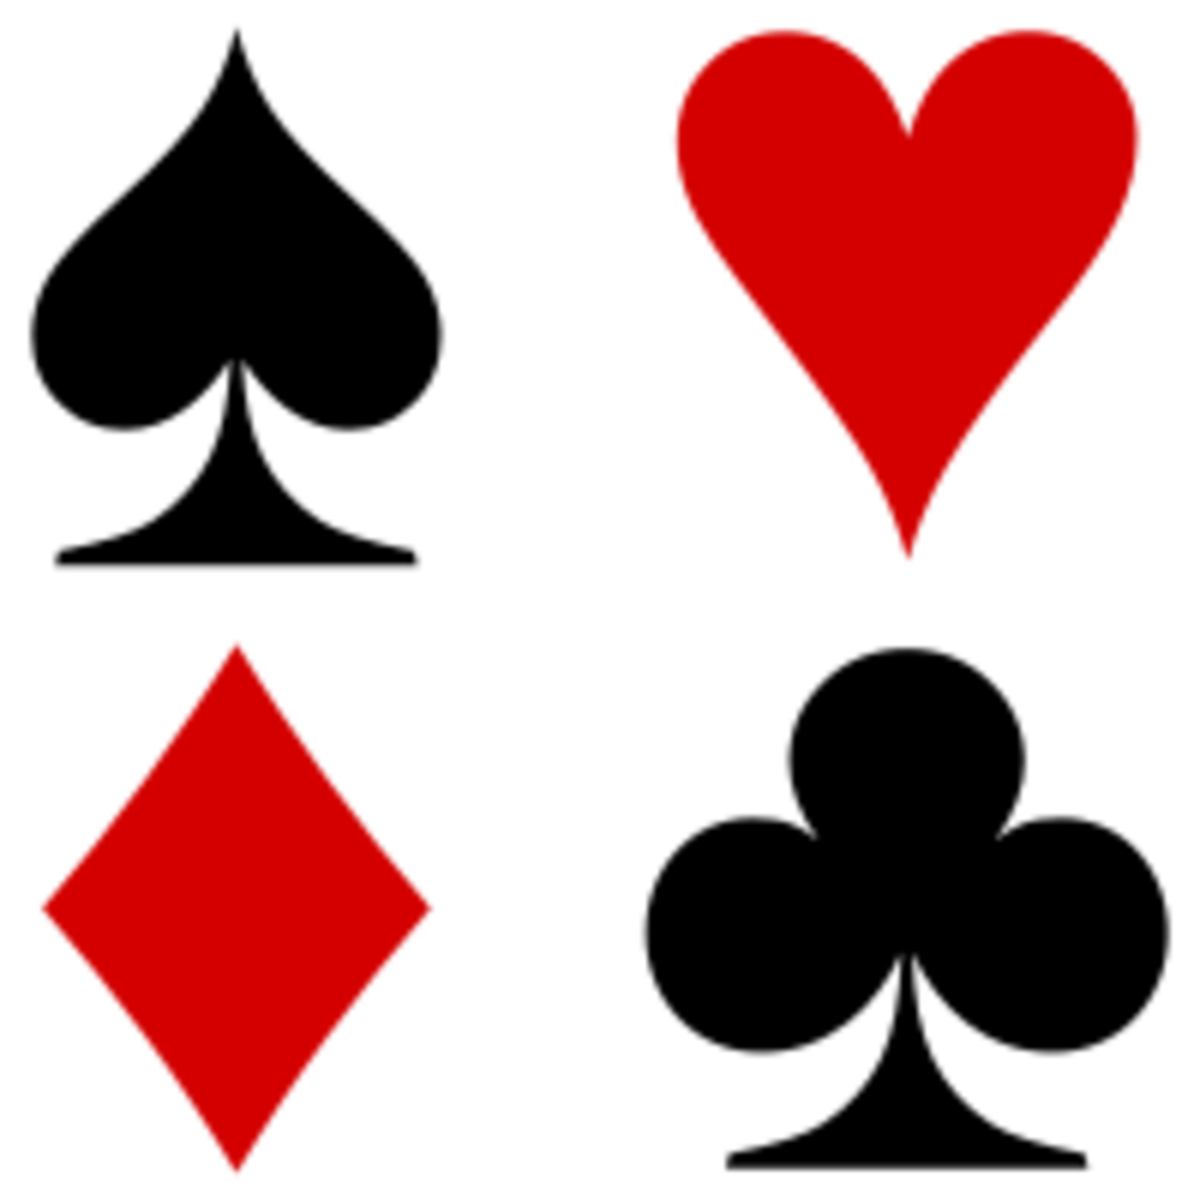 Spades, Hearts, Diamonds, and Clubs